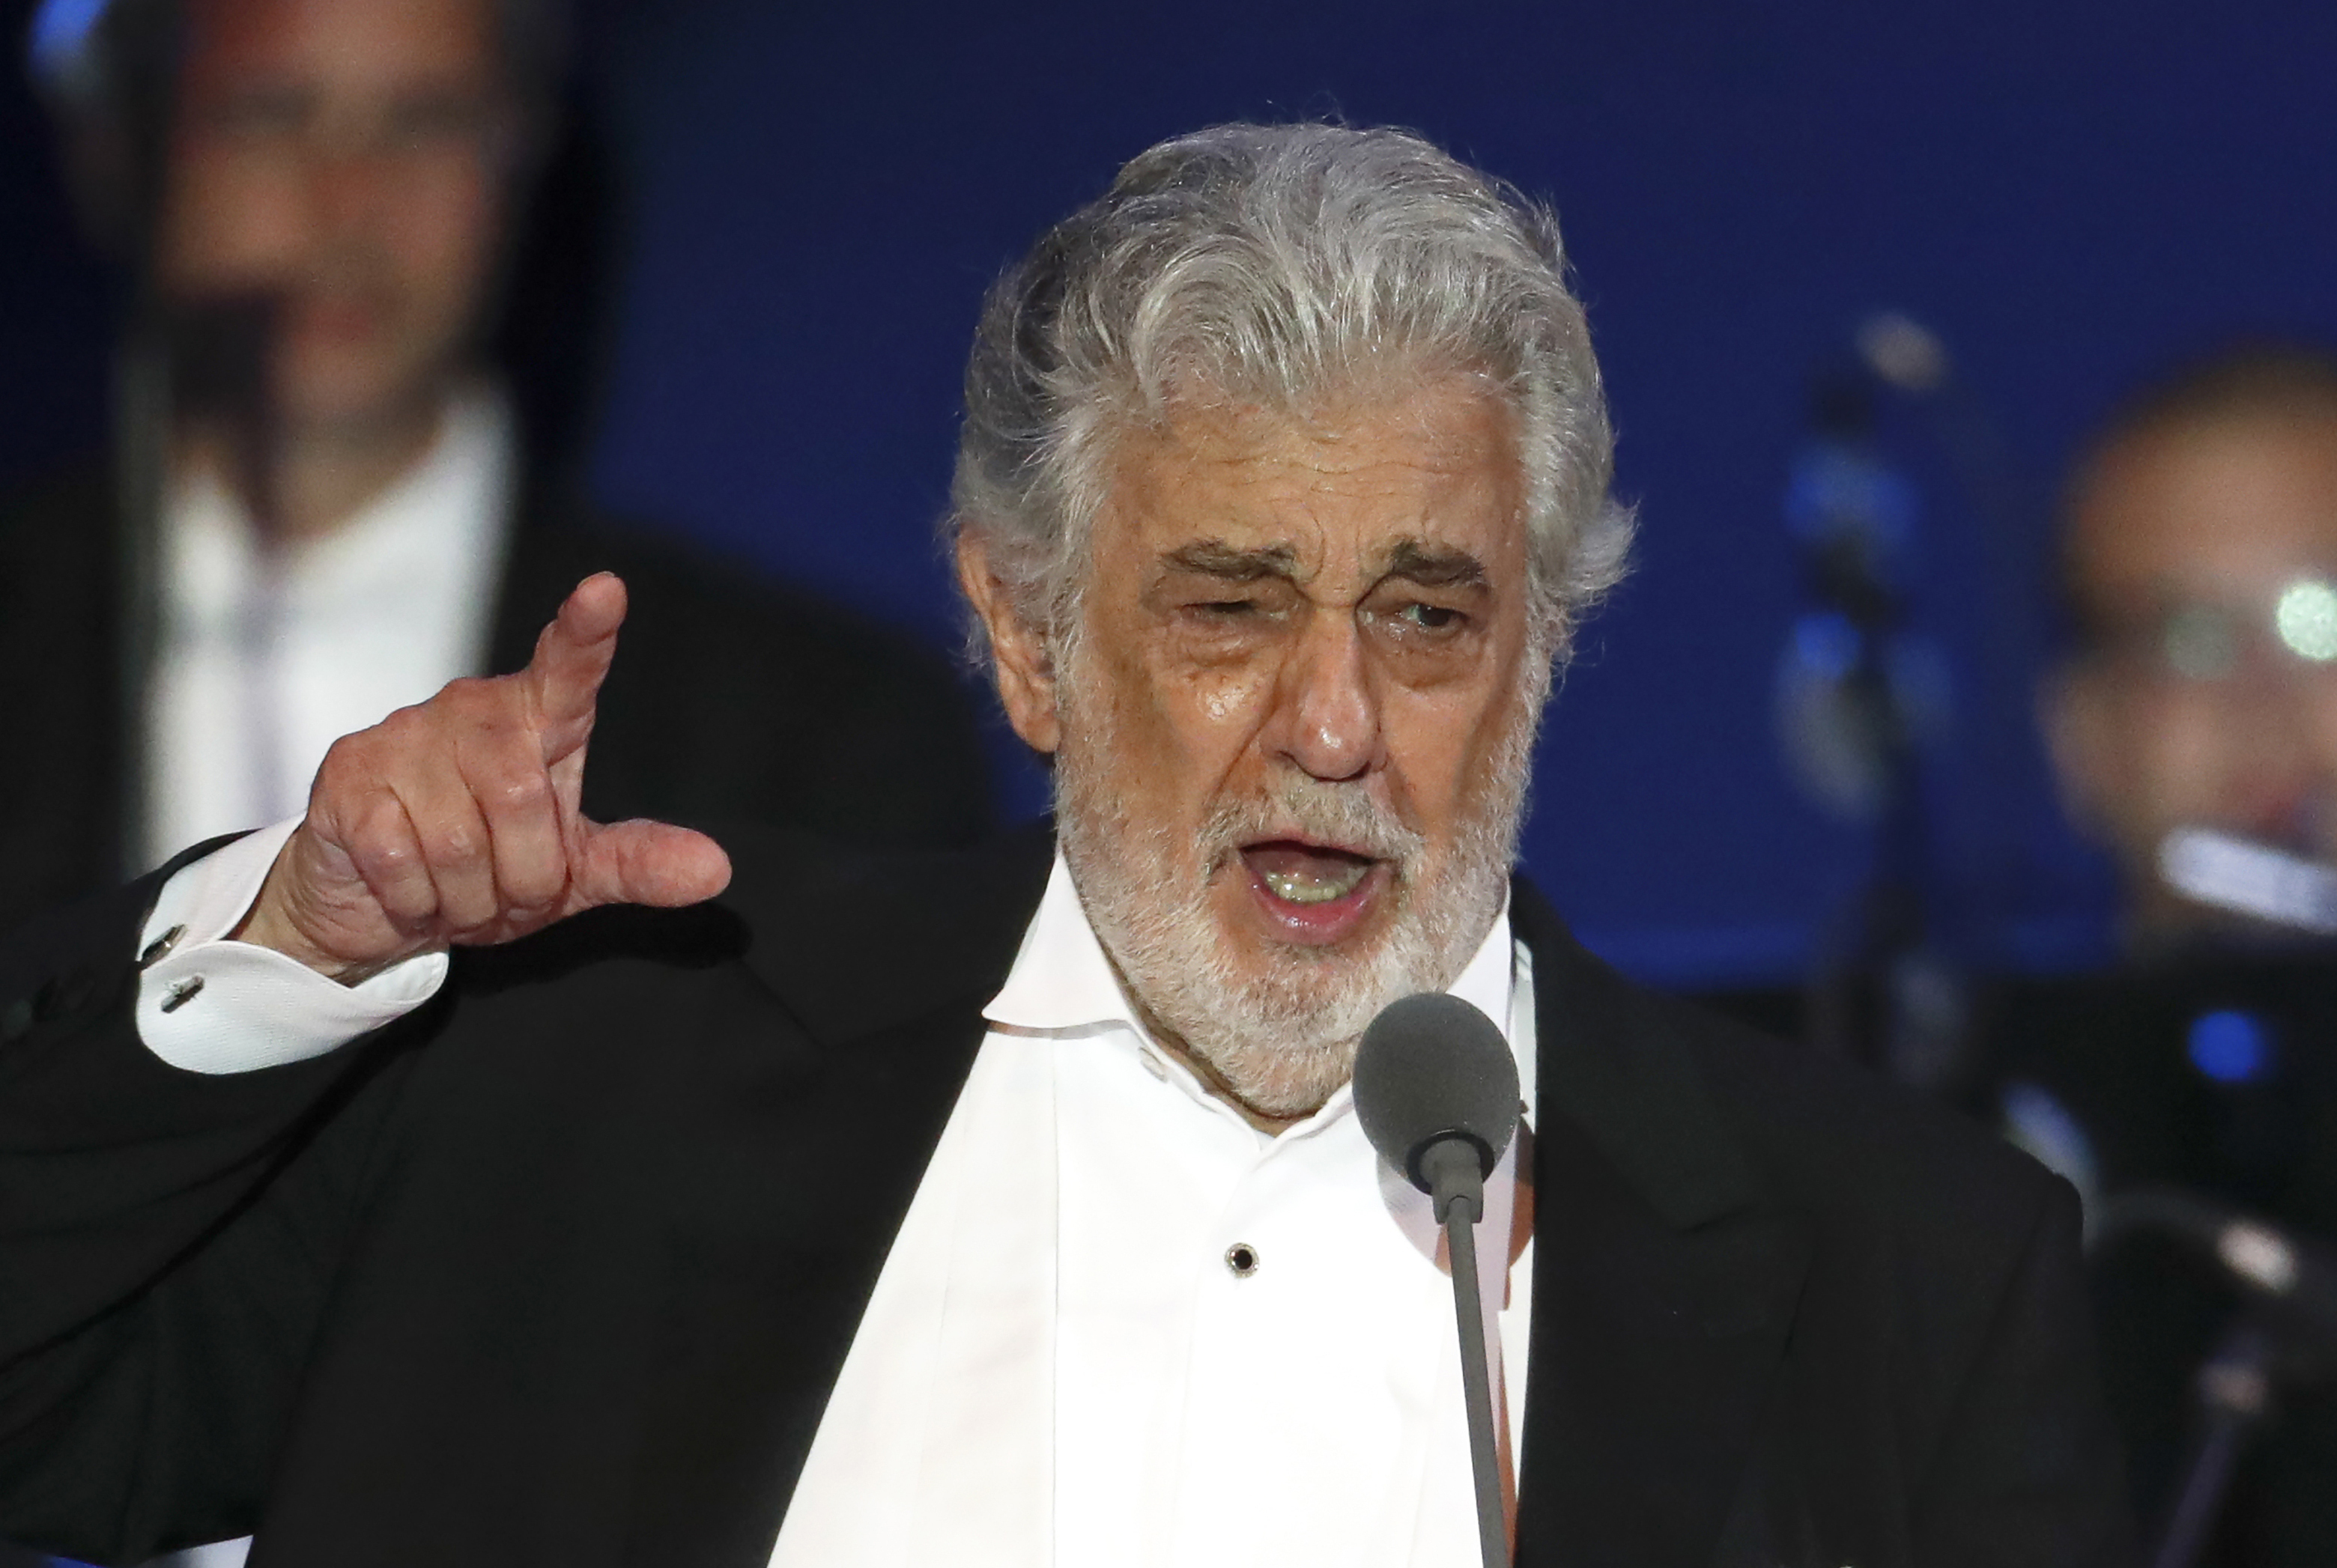 In this Aug. 28, 2019 photo, opera singer Placido Domingo performs during a concert in Szeged, Hungary. Domingo will make his first public appearance since recovering from coronavirus to accept a lifetime achievement award on Aug. 6 in Salzburg, Austria.